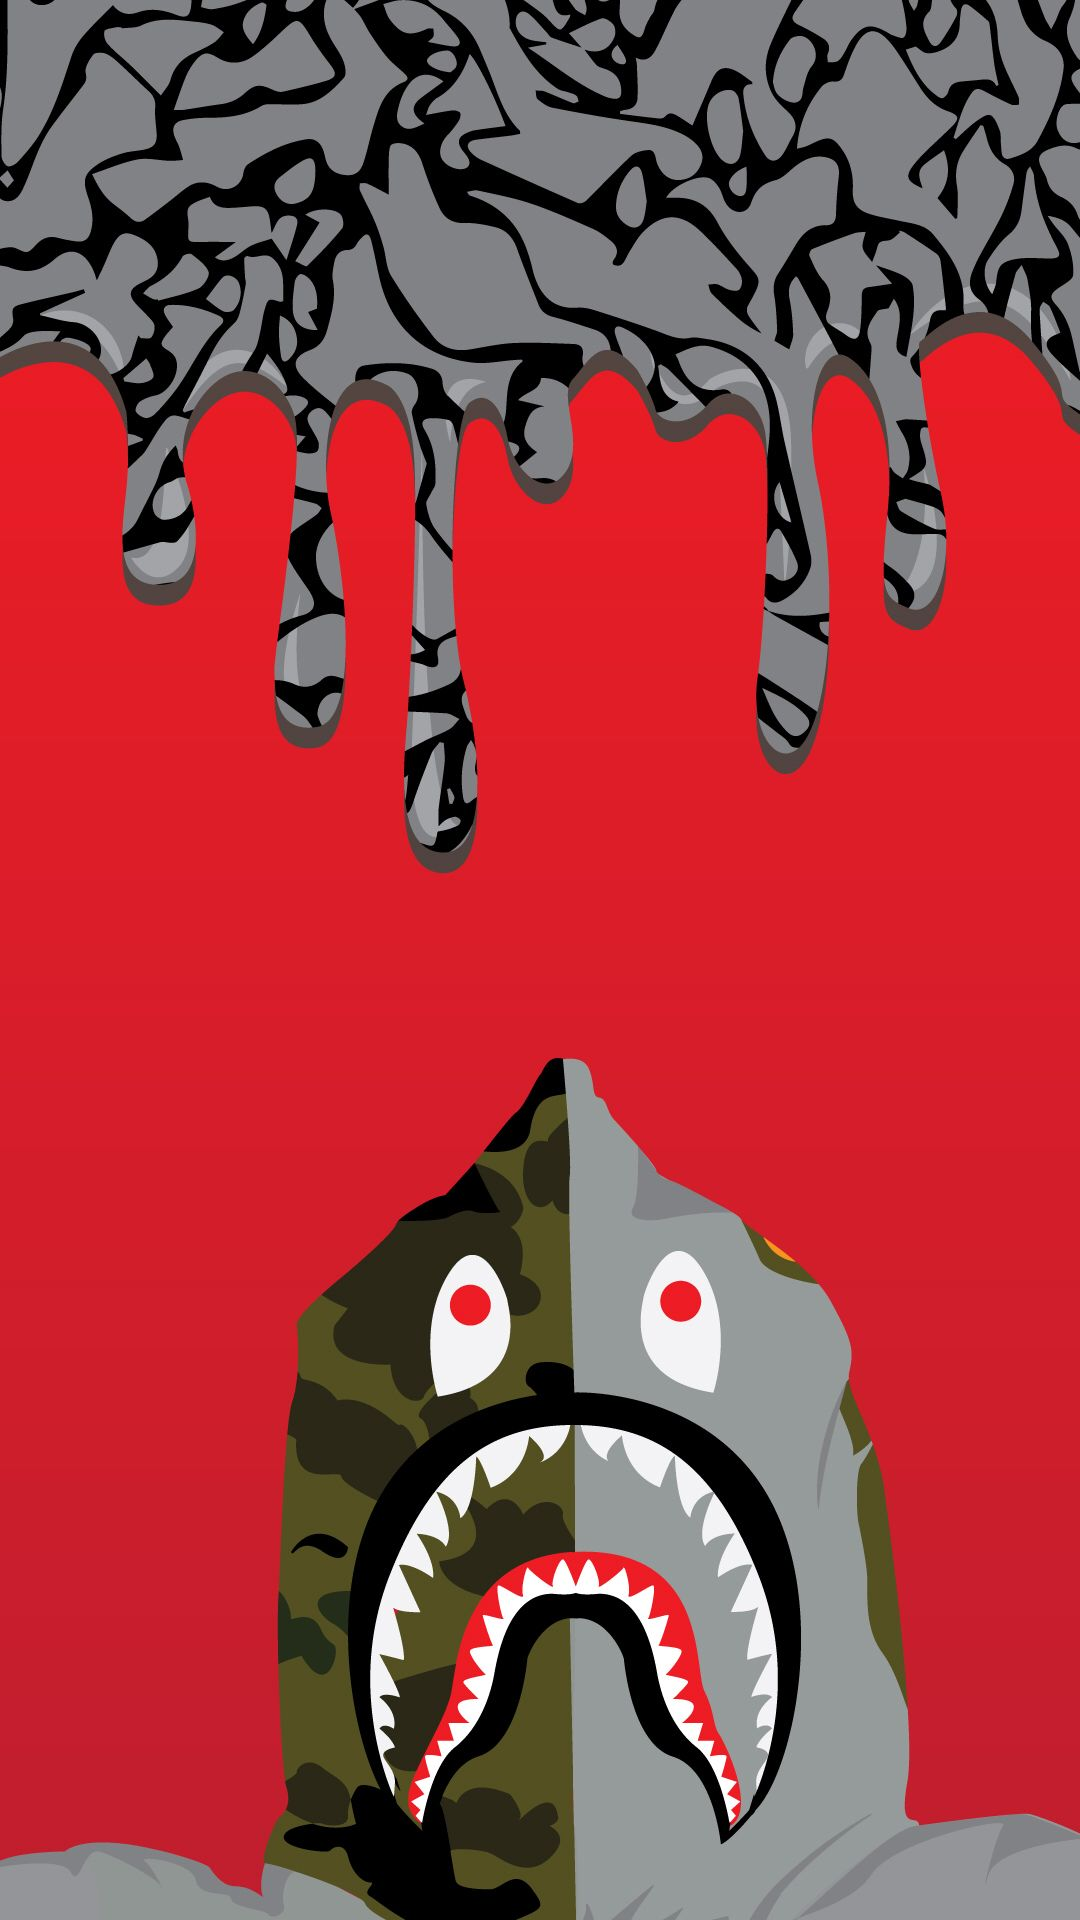 Hypebeast By Christopher Mineses Hypebeast Iphone Wallpaper Bape Wallpaper Iphone Bape Wallpapers